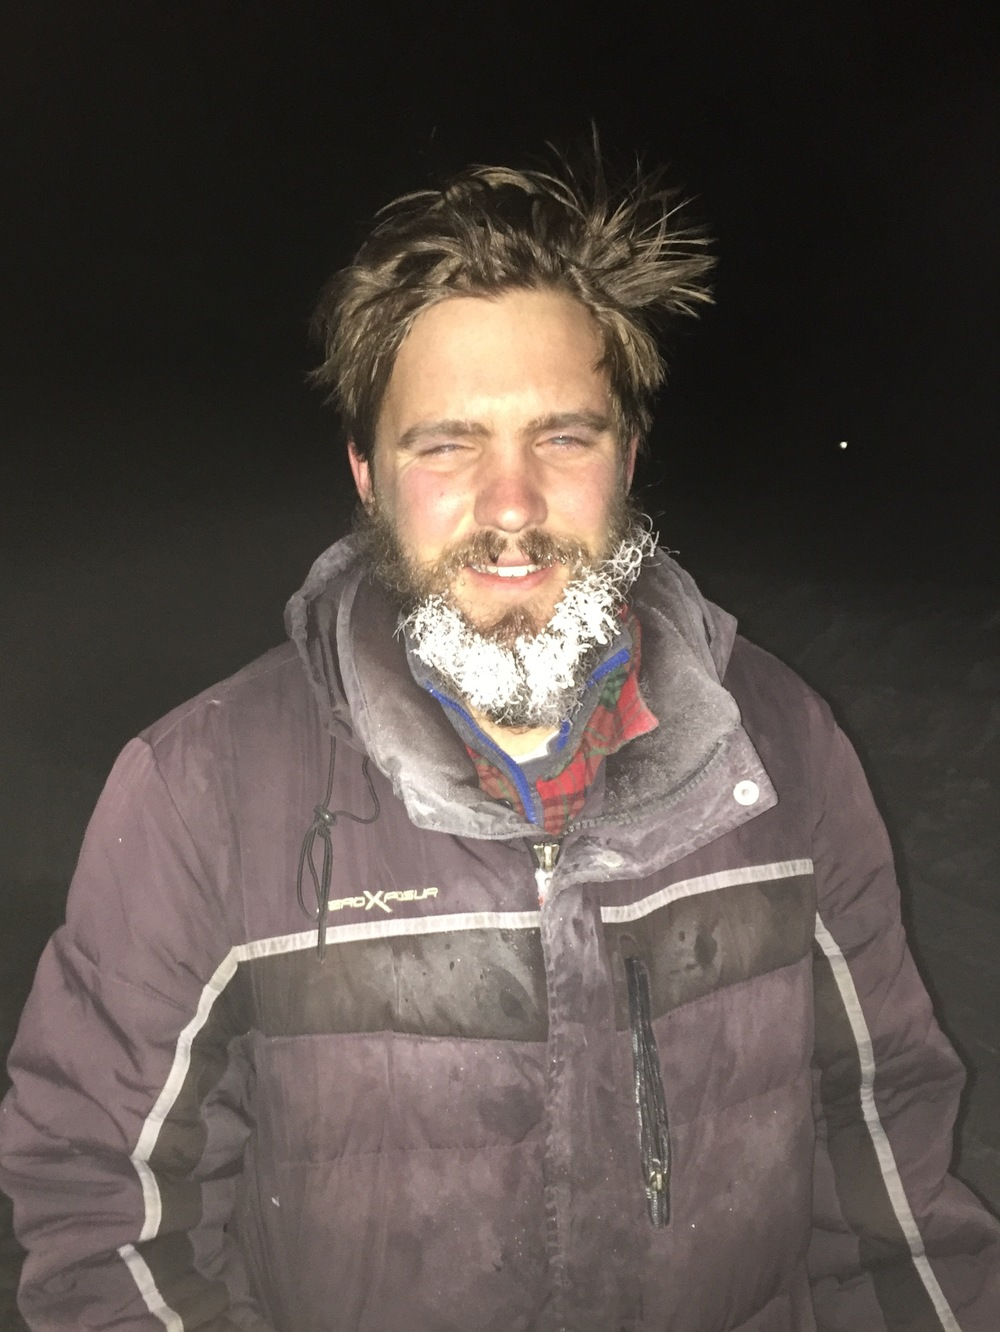 Andy after our 6-mile snowshoe at 13,000 feet in 0 degree temps to find Boreal Owl. None were heard.